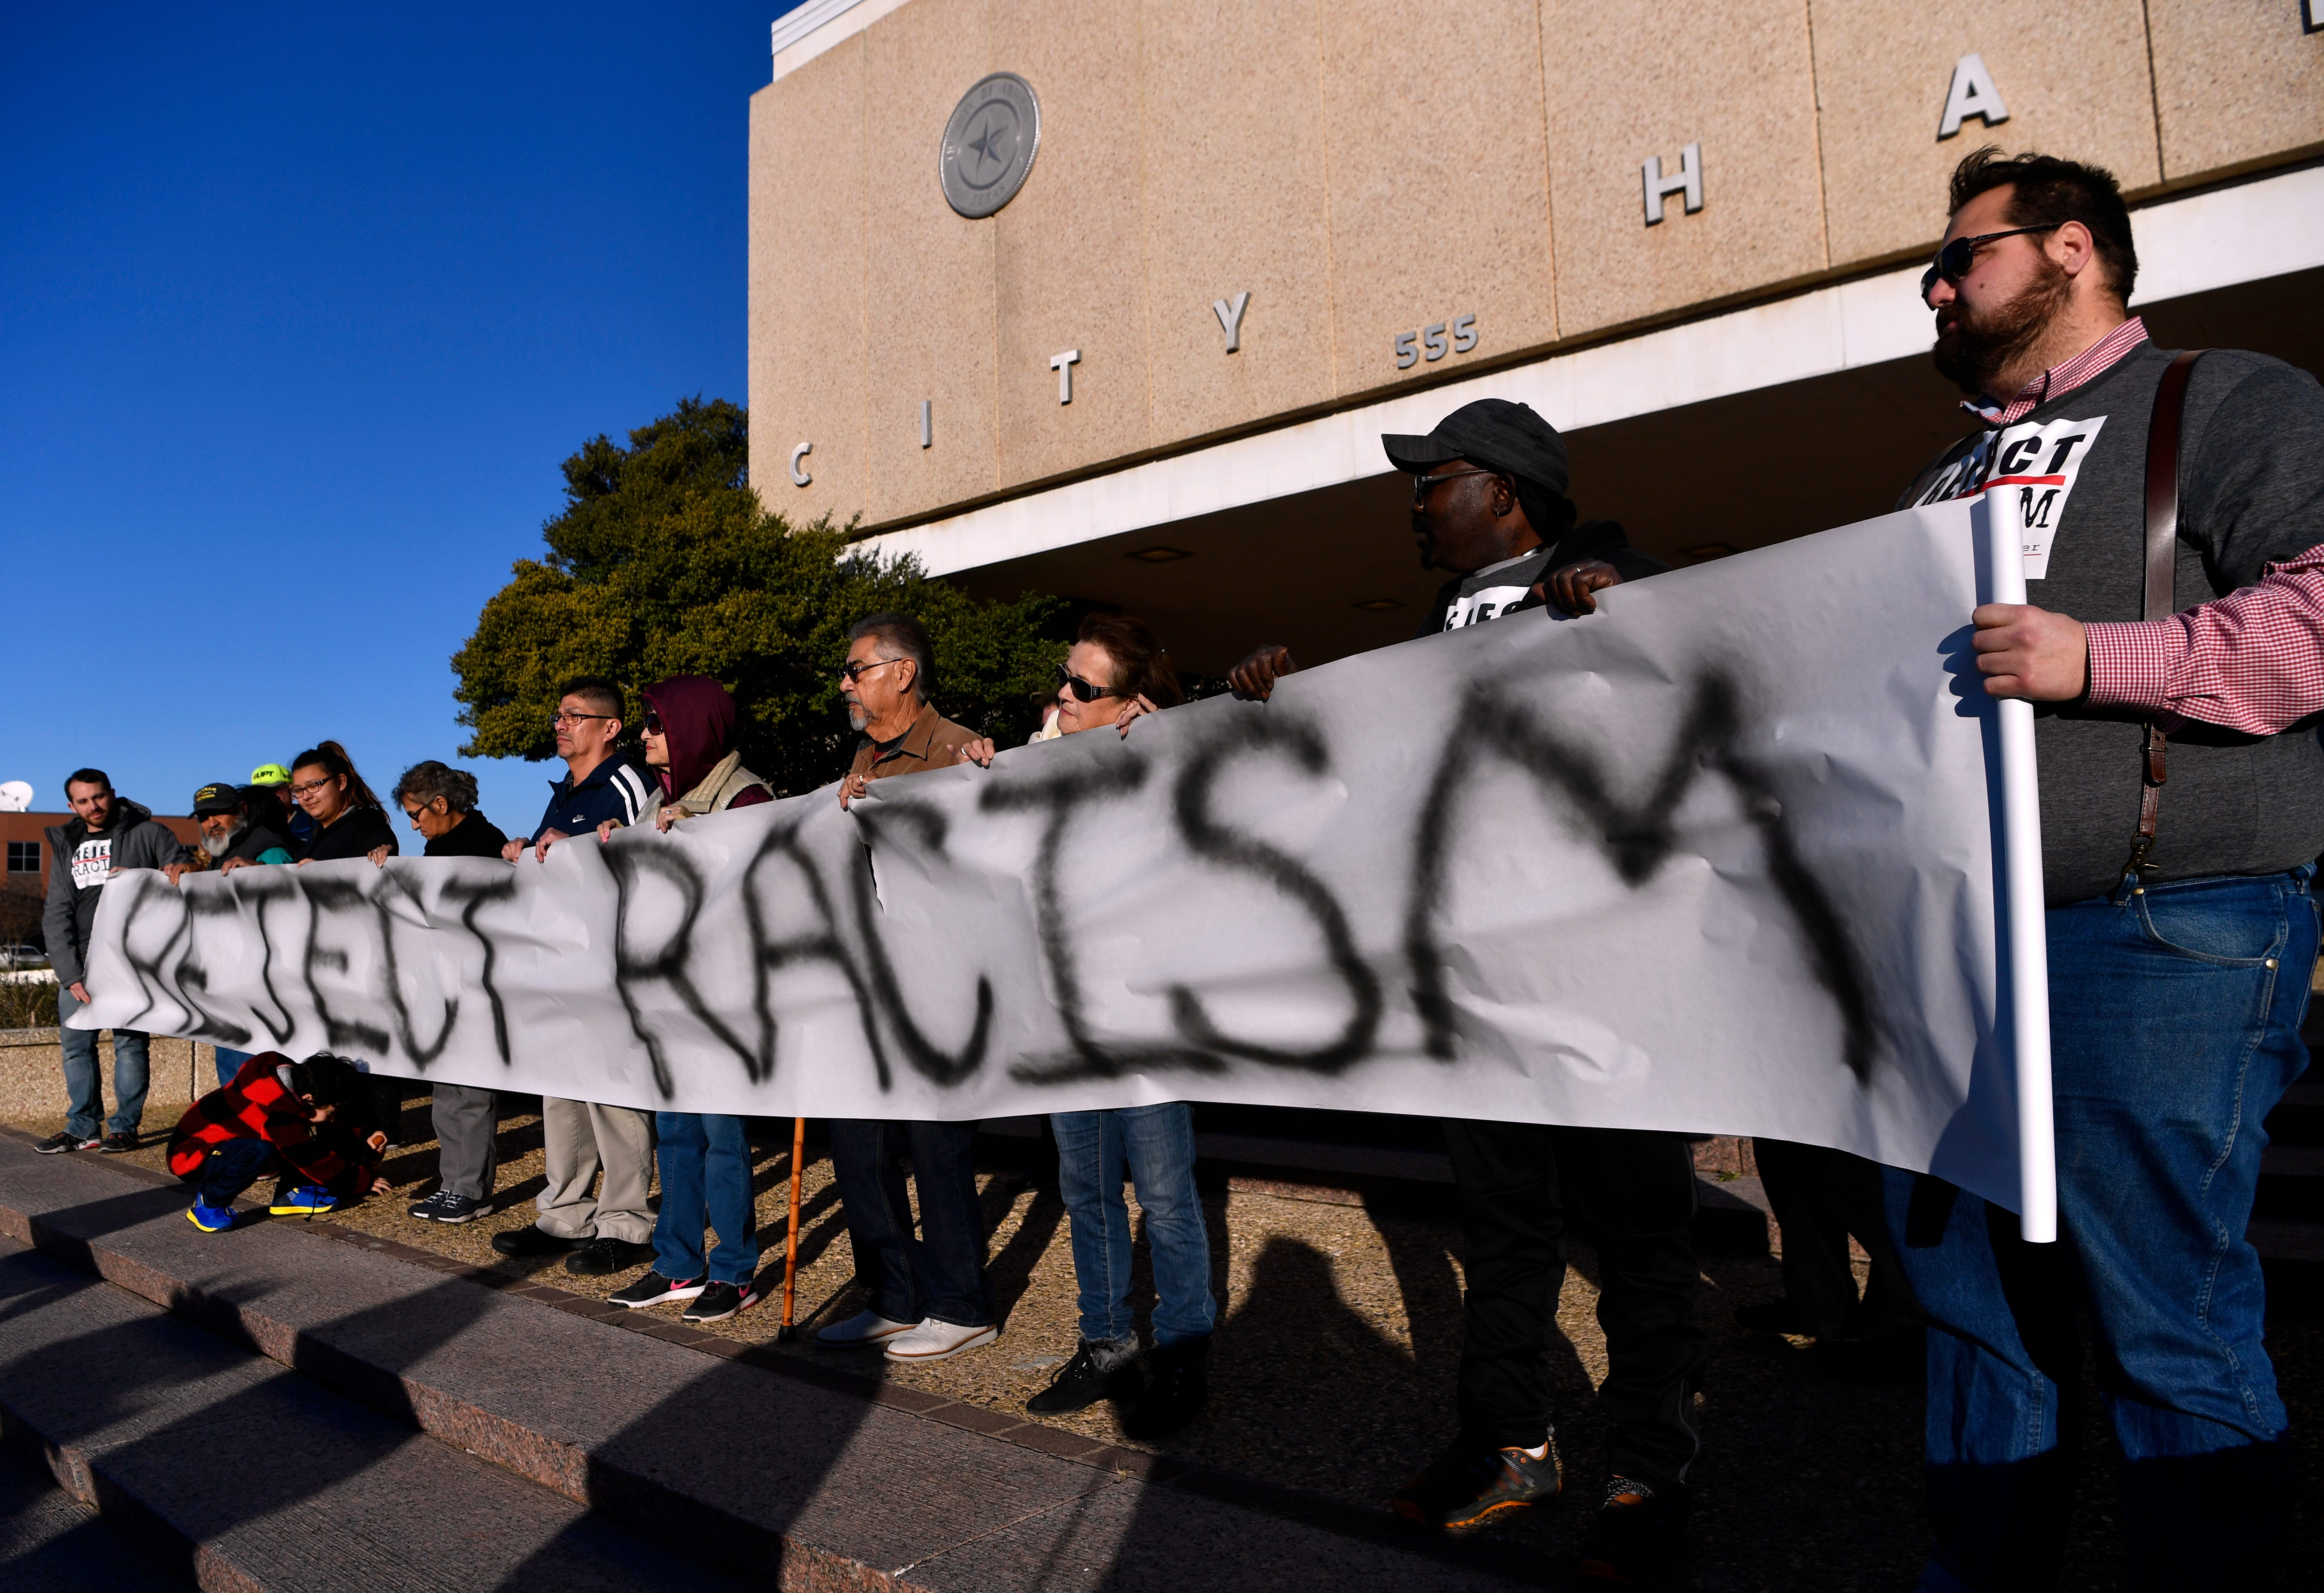 Protesters hold a paper banner in front of Abilene City Hall Thursday Jan. 24, 2019 before the City Council meeting. The council was scheduled to vote on a censure of member Kyle McAlister whose social media posts have been labeled as racist by community members.